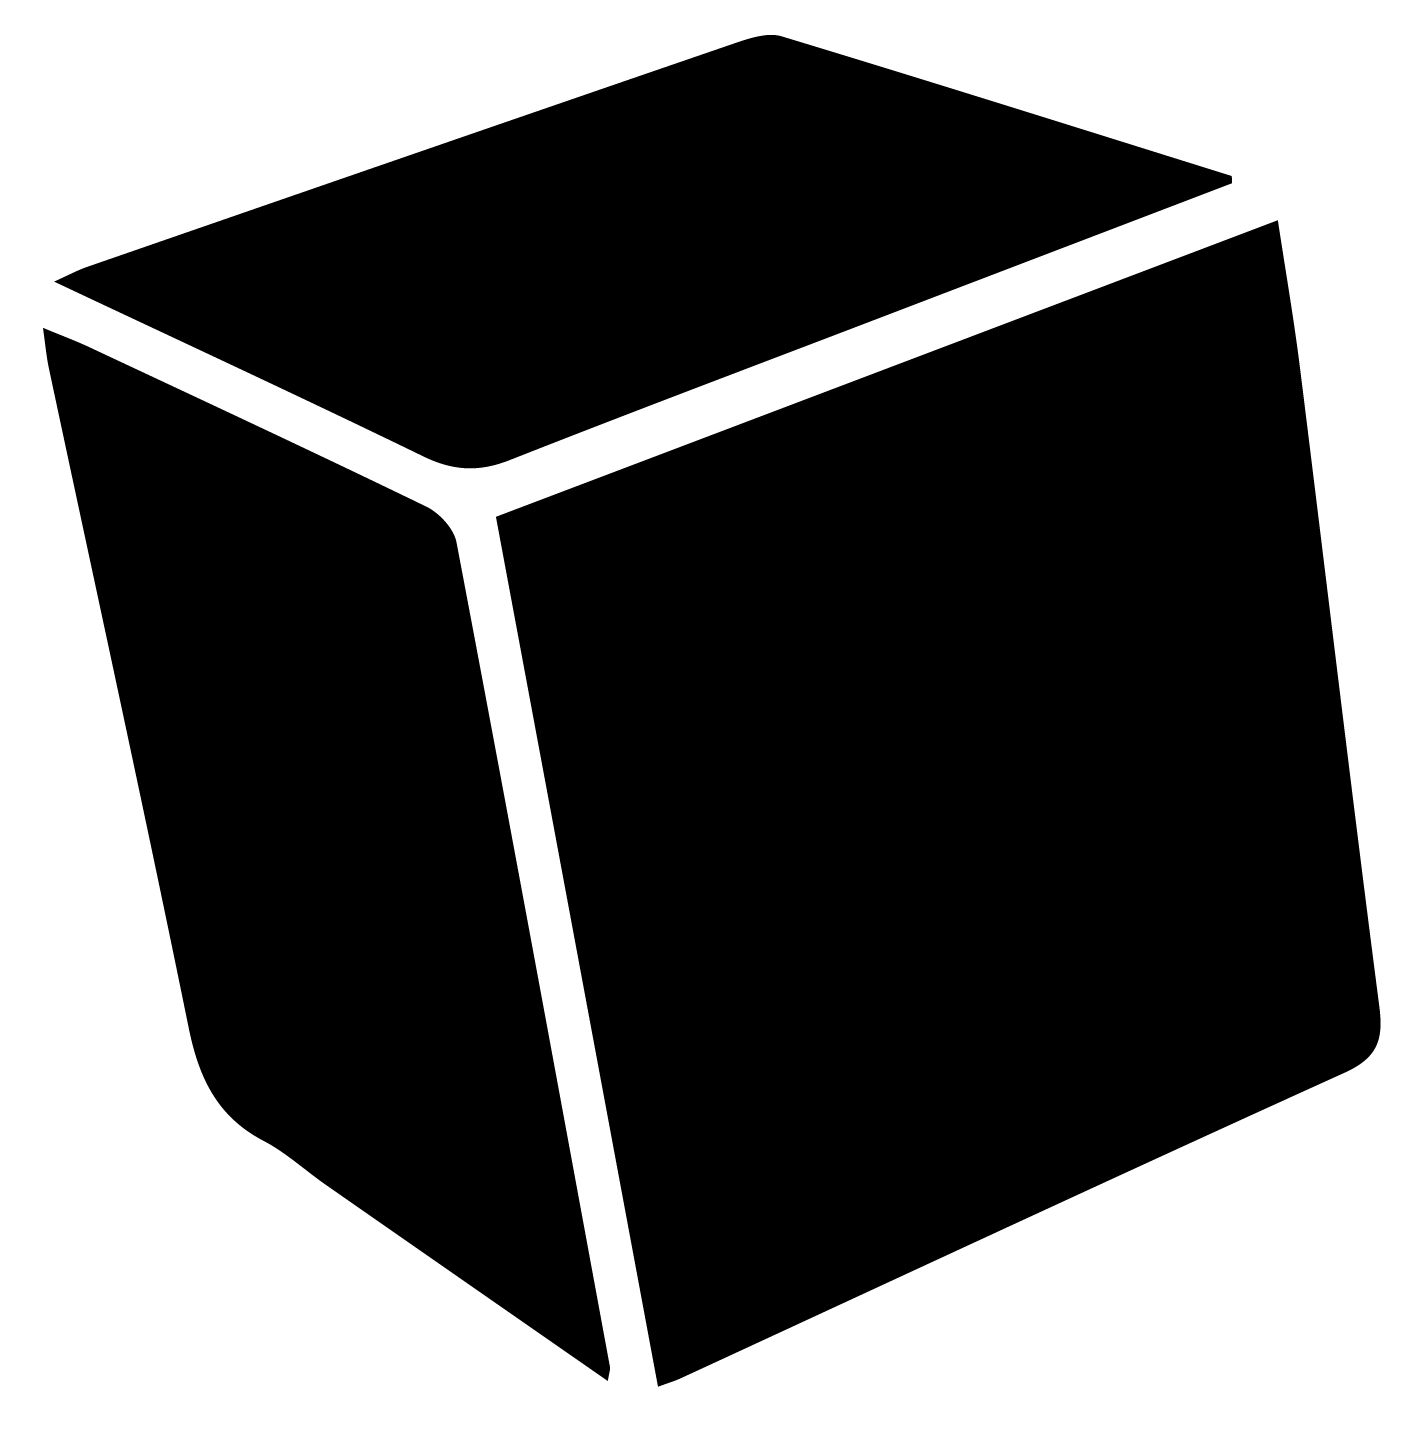 cropped-blackbox-cube.png - Black Box Security